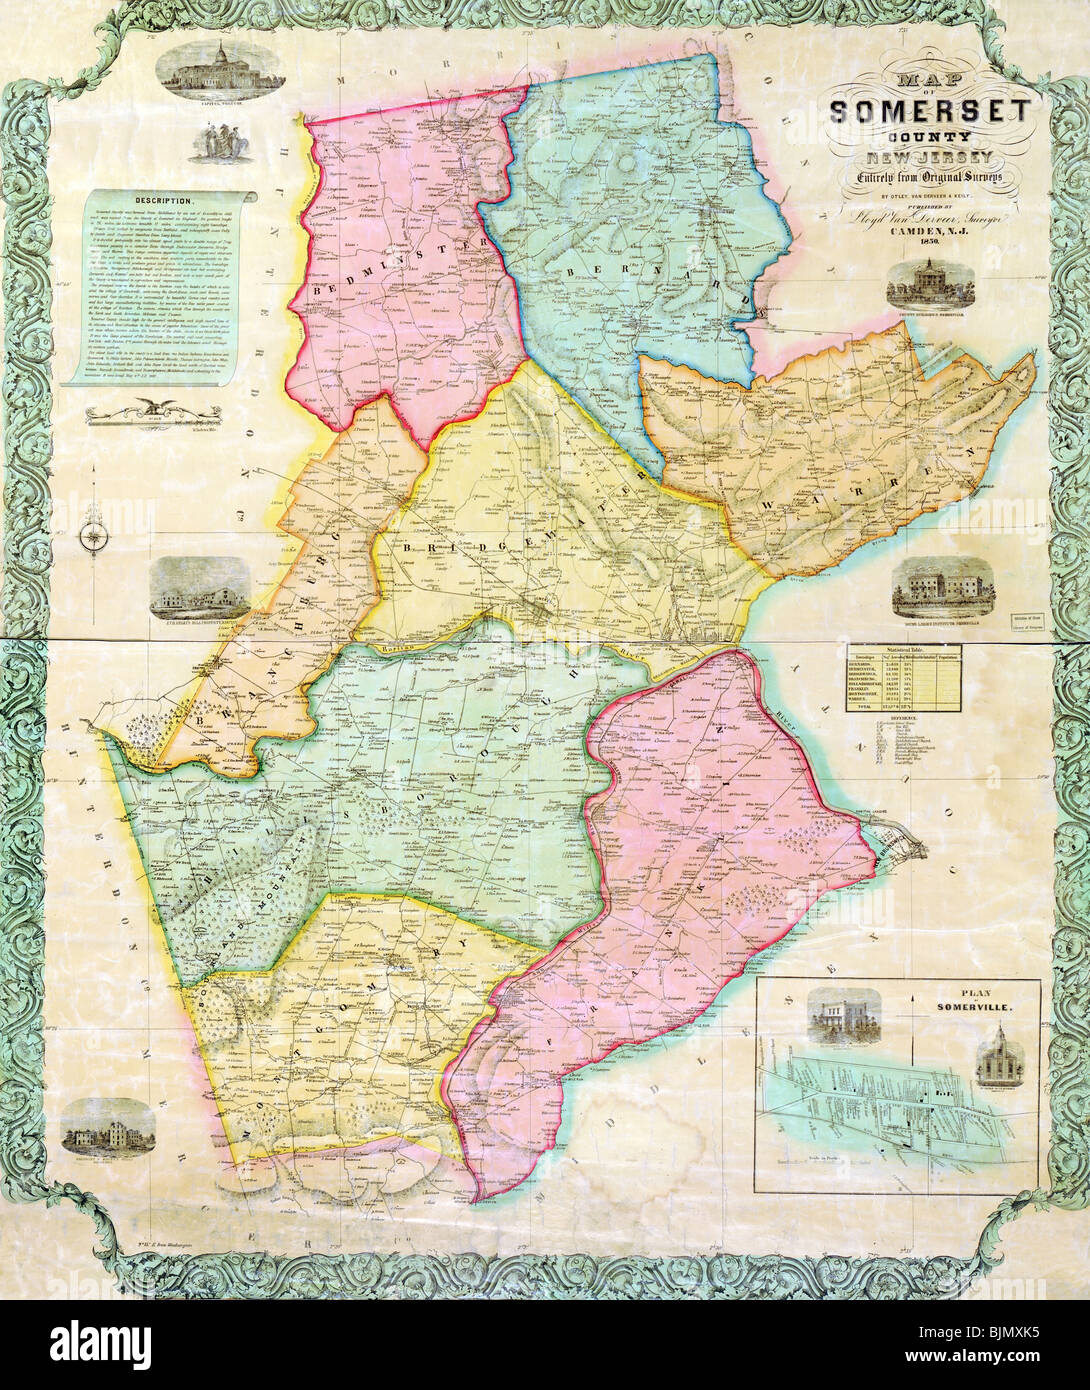 1850 Map of Somerset County New Jersey USA Stock Photo 28734137